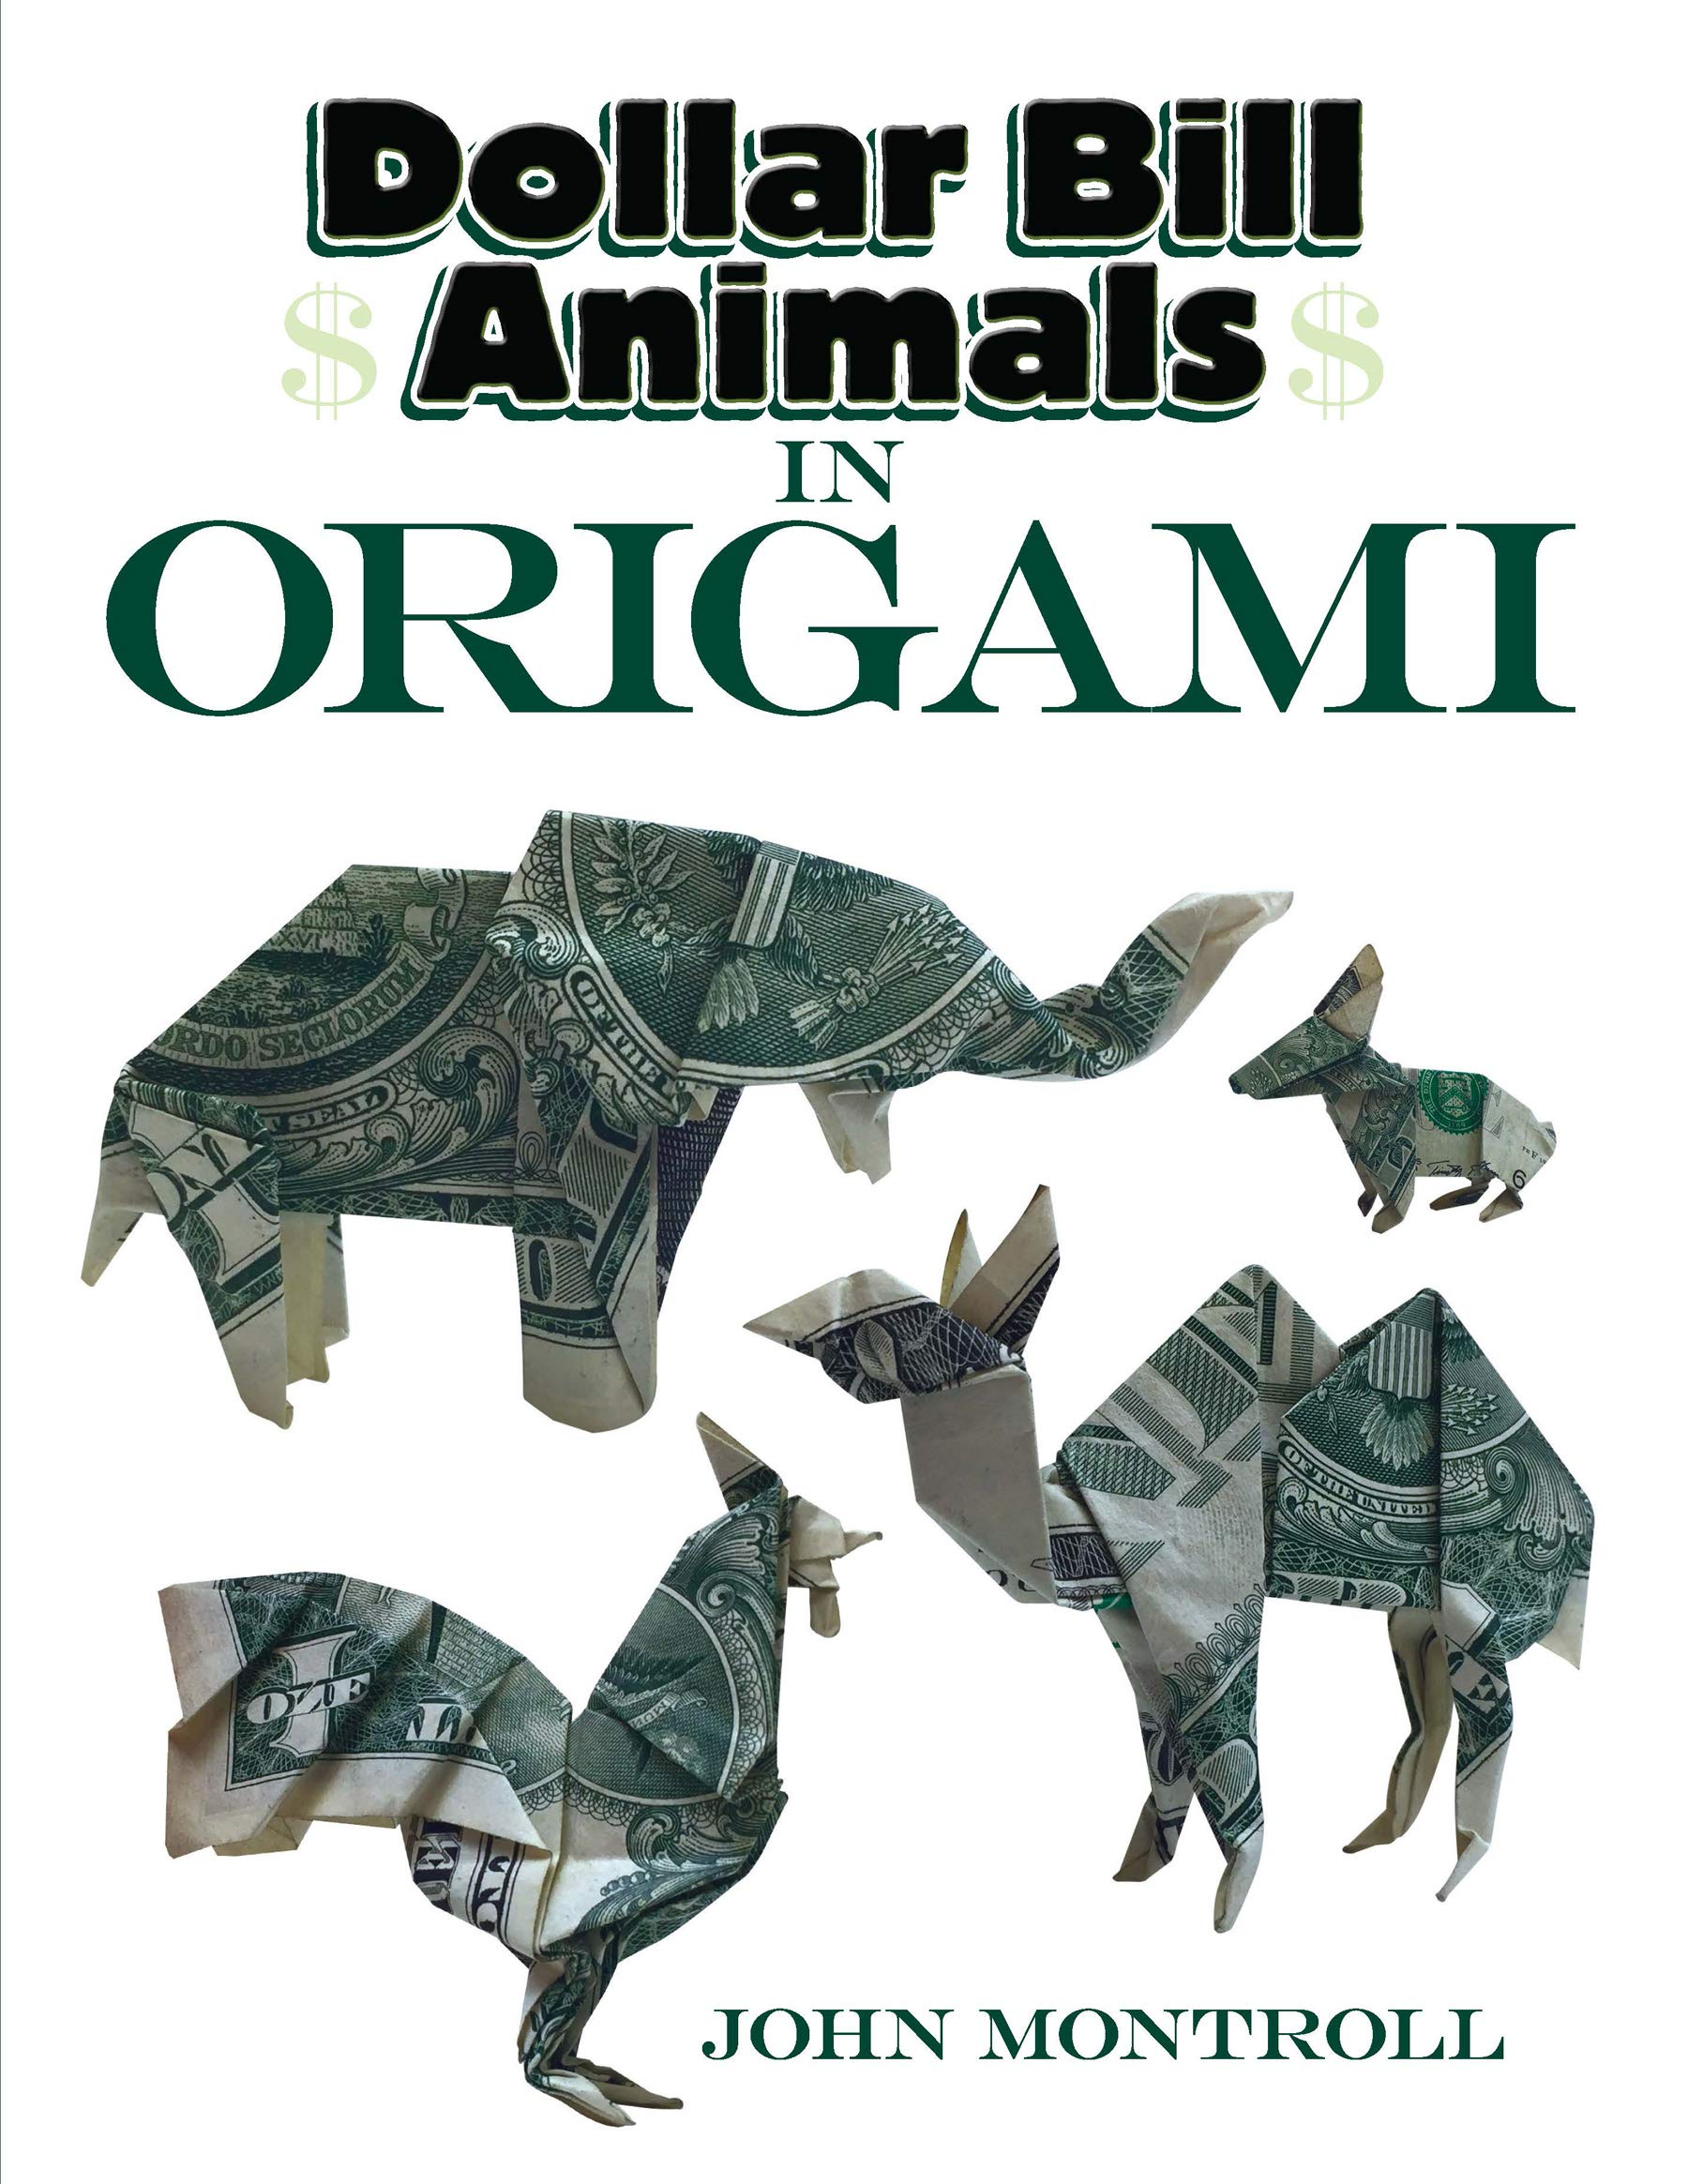 25 Money Origami Tutorials | 3D Dollar Bill Crafts | 2329x1800